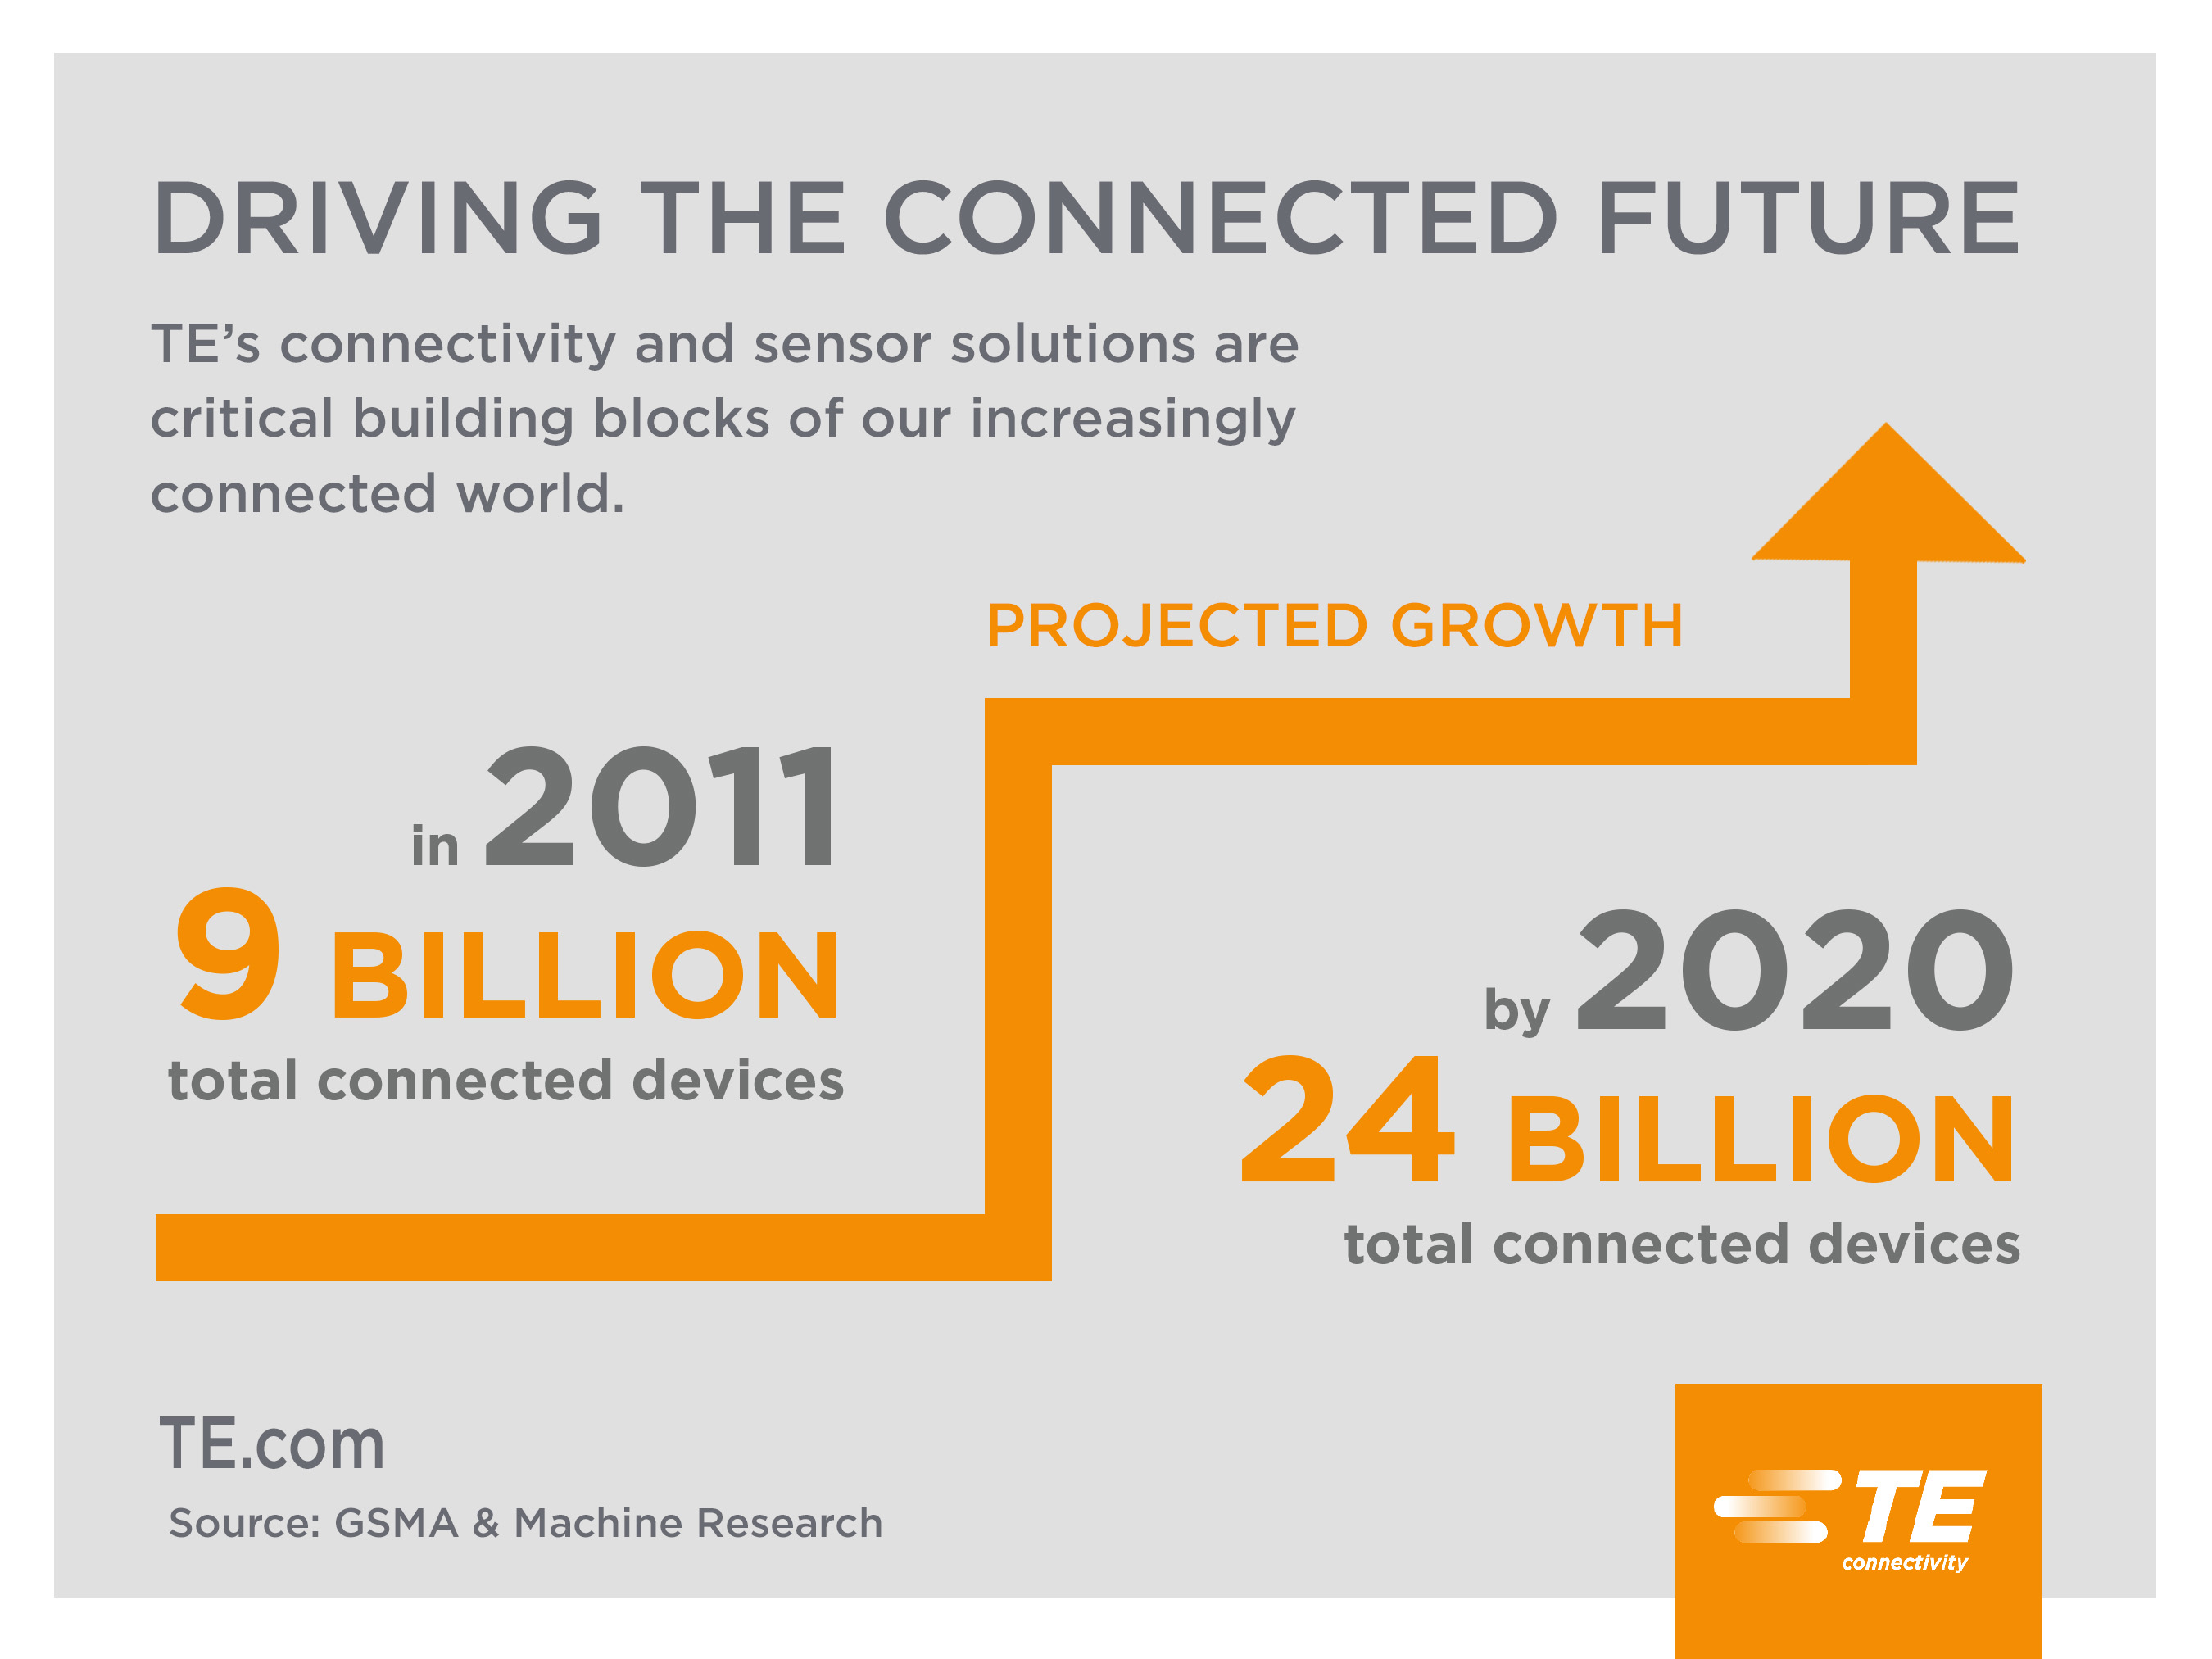 Driving the connected future – TE's connectivity and sensor solutions are critical building blocks of our increasingly connected world.